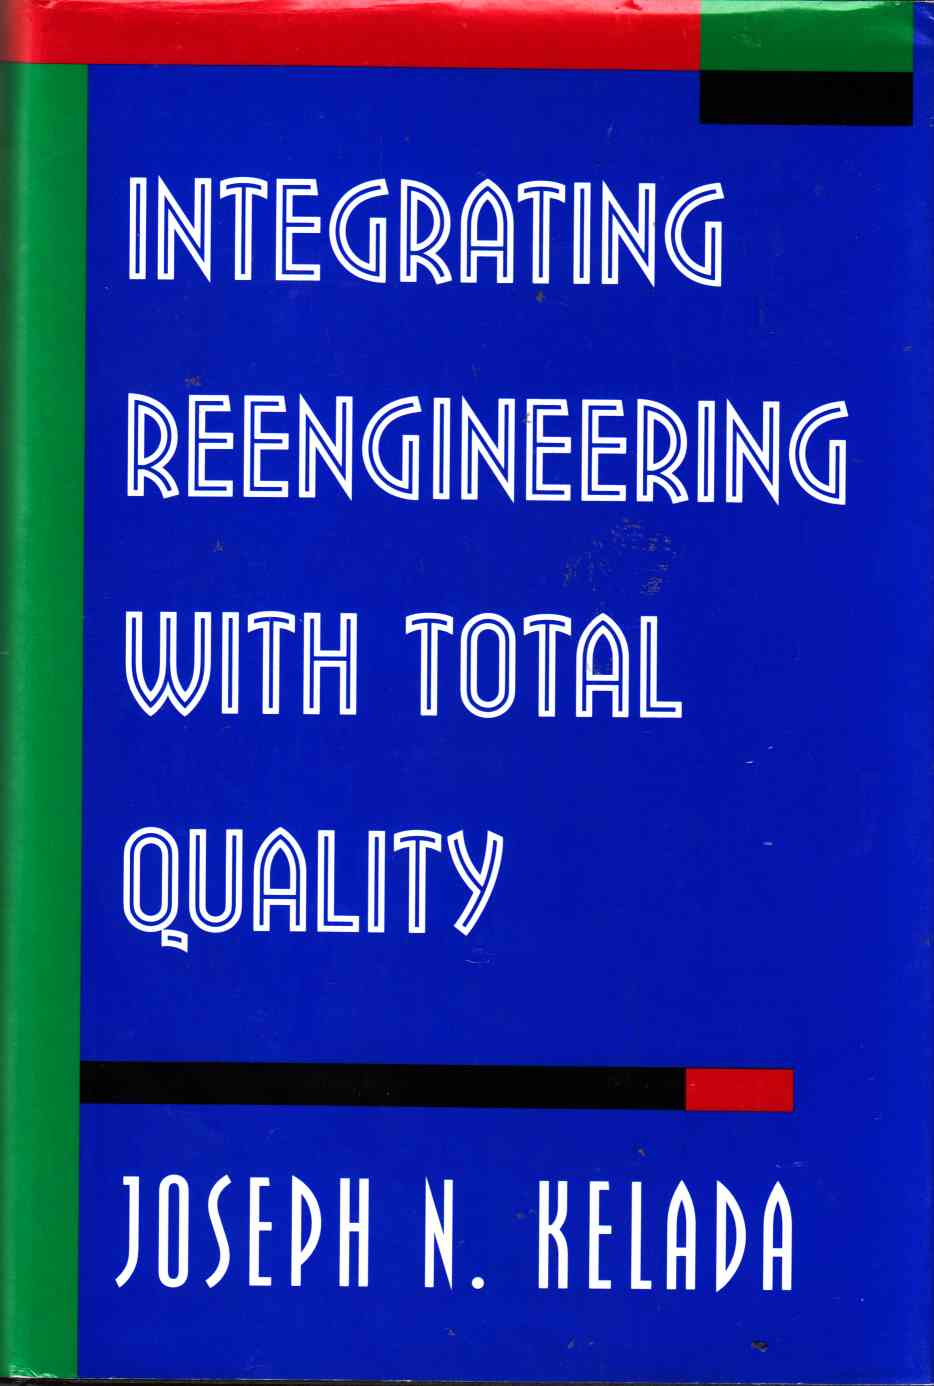 Image for Integrating Reengineering with Total Quality